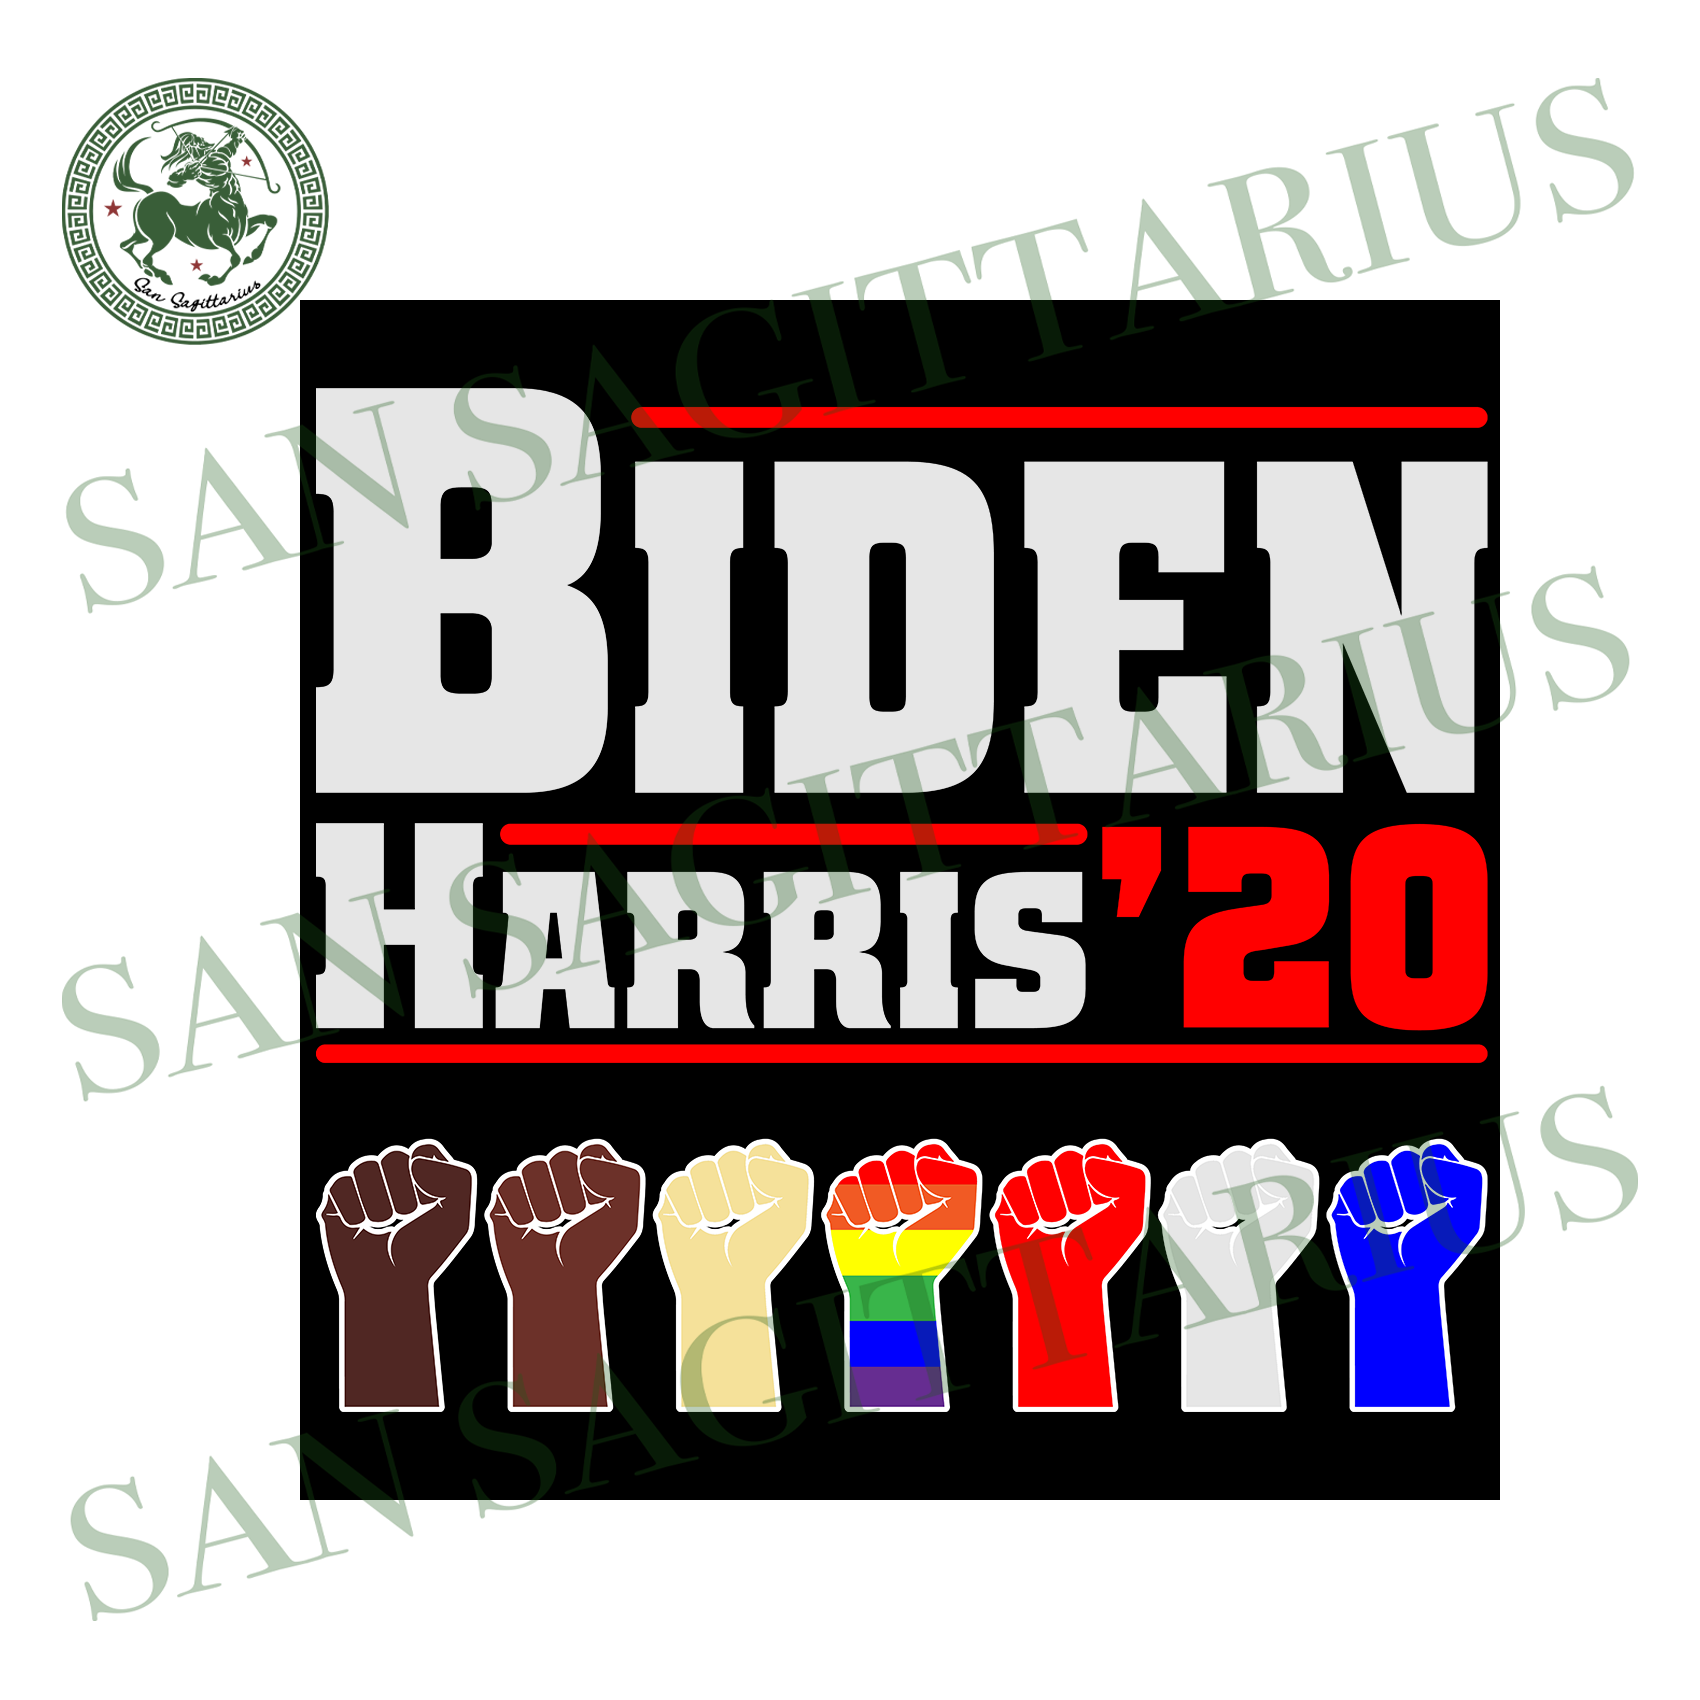 Biden harris 20 svg,svg,harris 2020 svg,political shirt svg,anti trump 2020 svg,biden for president svg,svg cricut, silhouette svg files, cricut svg, silhouette svg, svg designs, vinyl svg